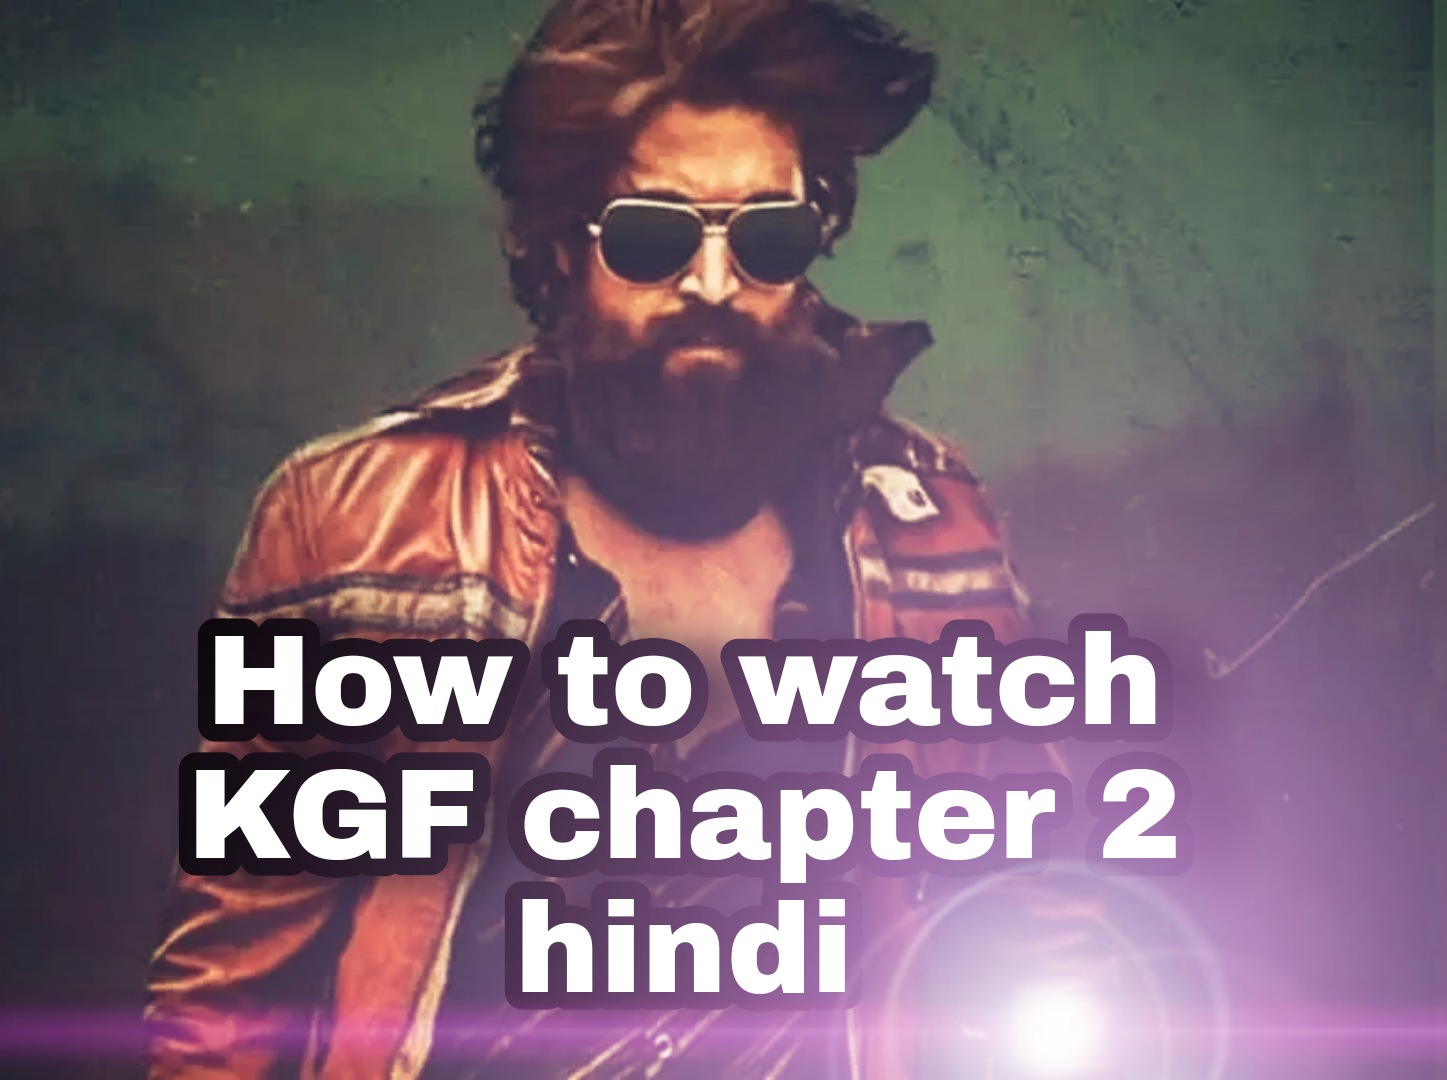 Where can I see KGF chapter 2 Hindi ?    How to watch kgf chapter 2 hindi